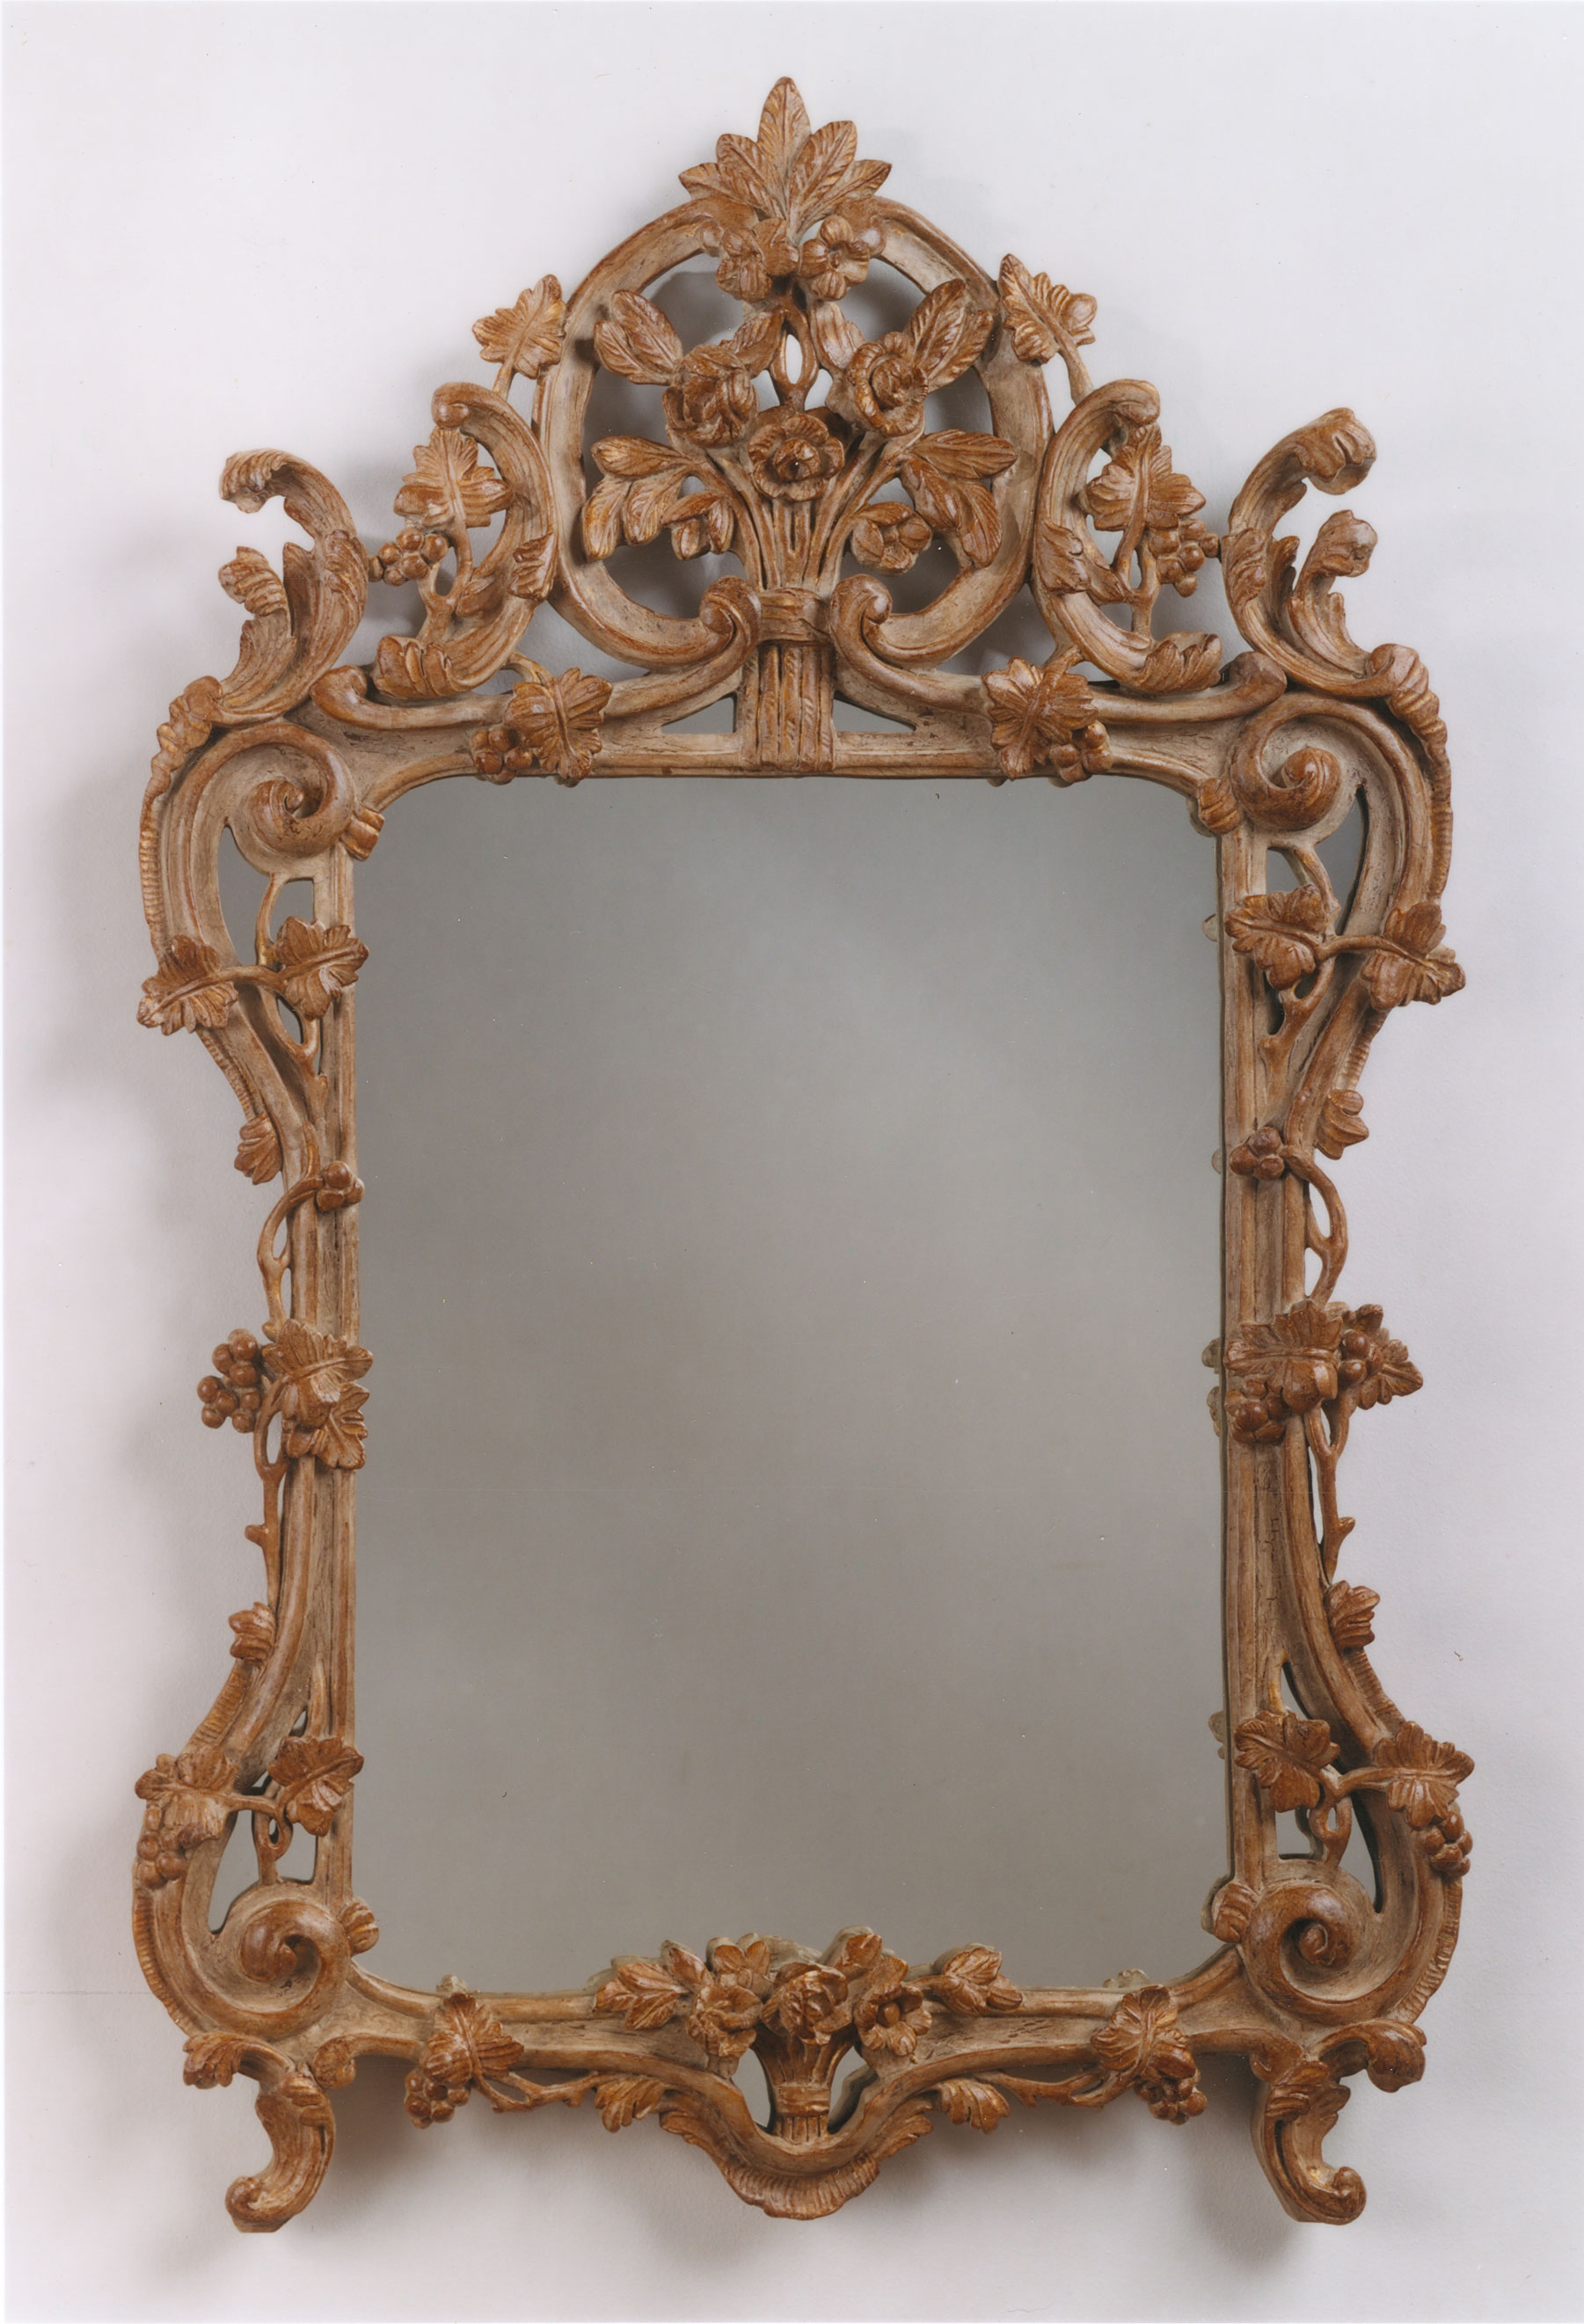 Inspiring Ideas Designer Mirrors Canada Designer Mirrors London Intended For Antique Mirrors London (Image 9 of 15)